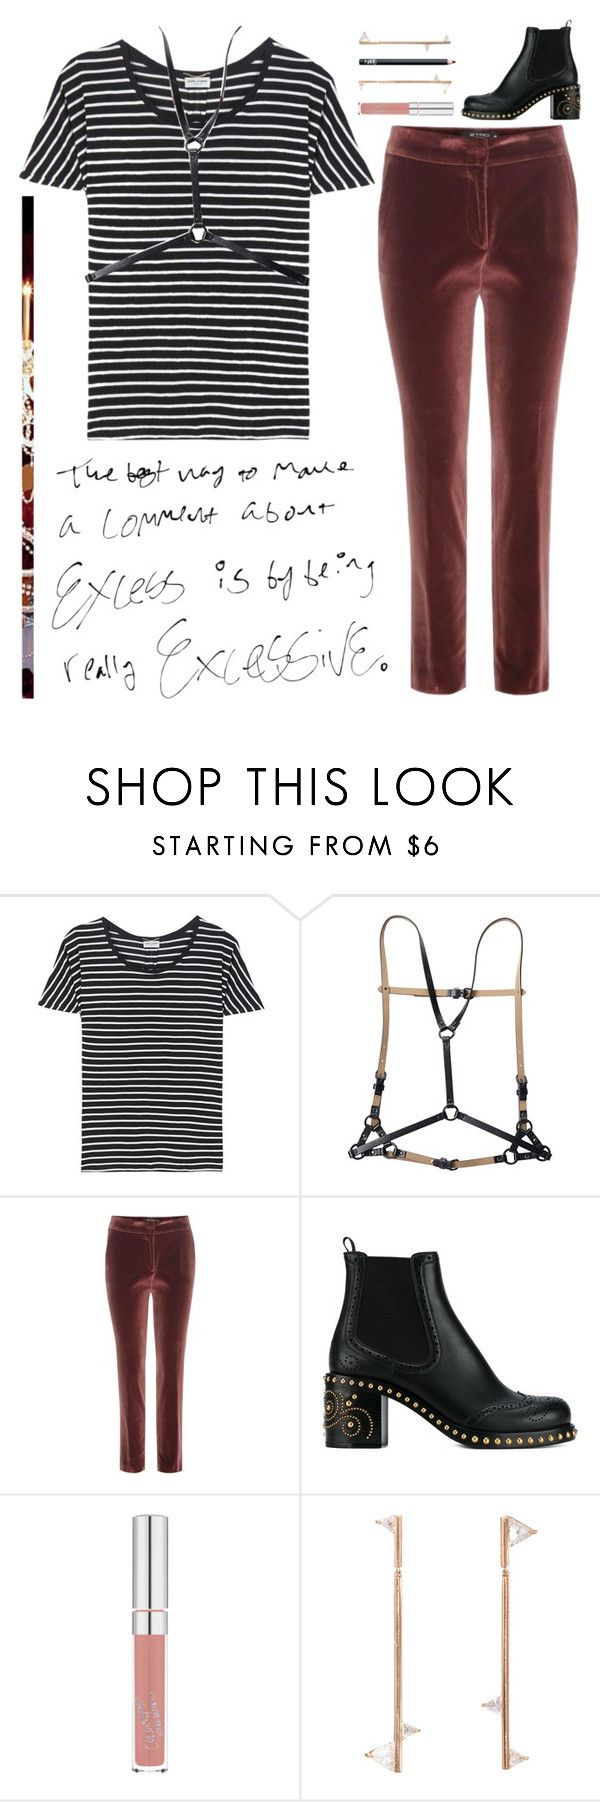 """""""Current Trends"""" by claralodesky ❤ liked on Polyvore featuring Yves Saint Laurent, BCBGMAXAZRIA, Etro, Miu Miu, Eva Fehren and NARS Cosmetics"""